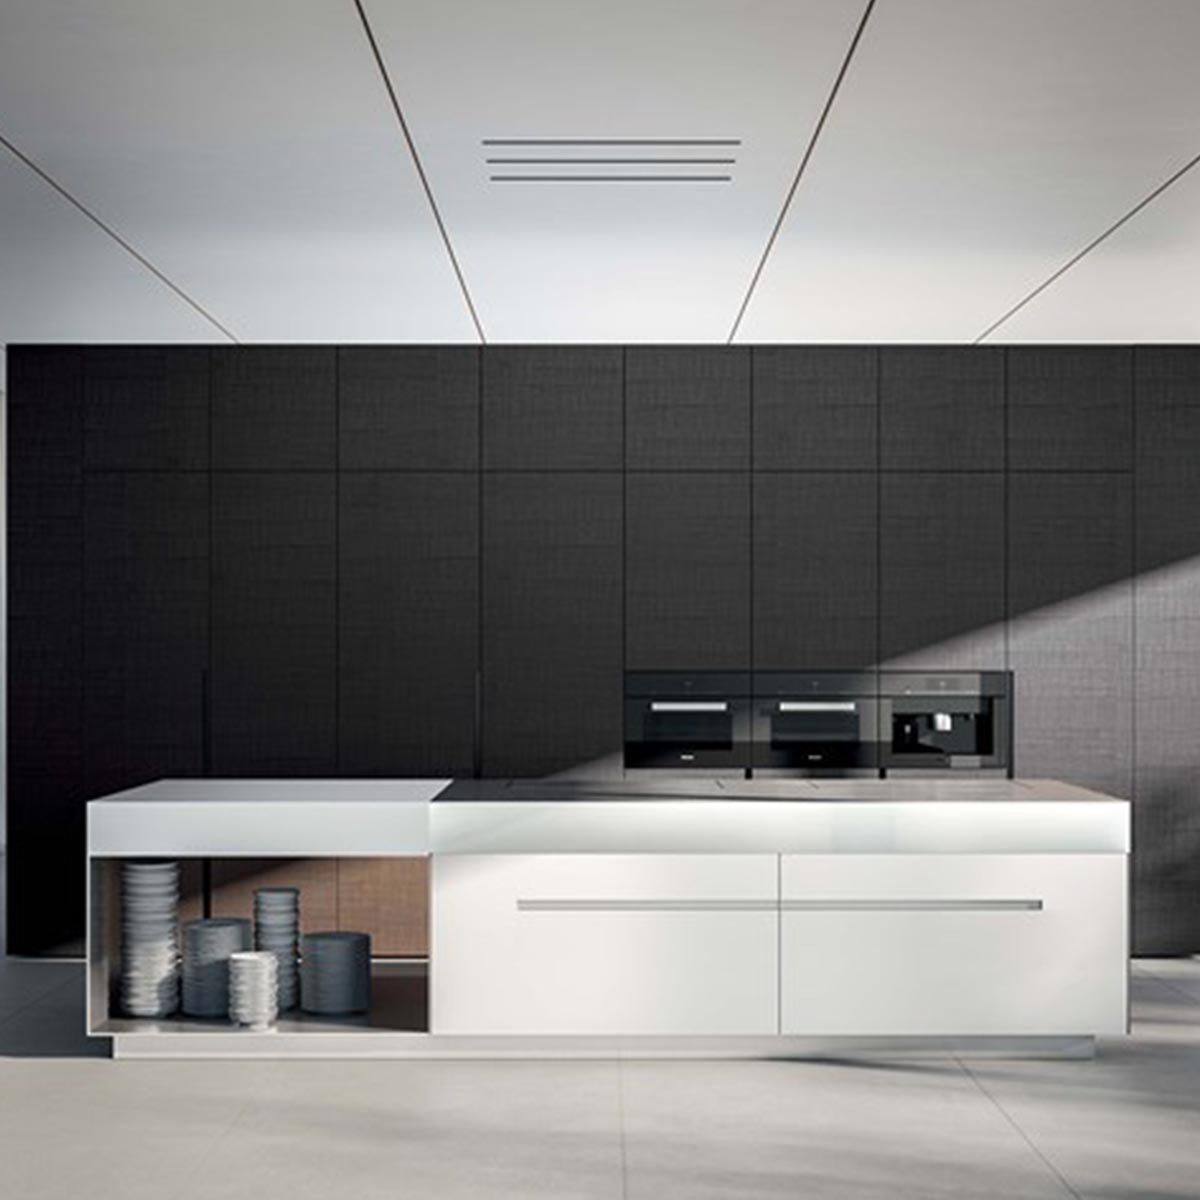 lore_mobili_bagno_0004_cucine-home-home-04-less-is-more_Nit_14098